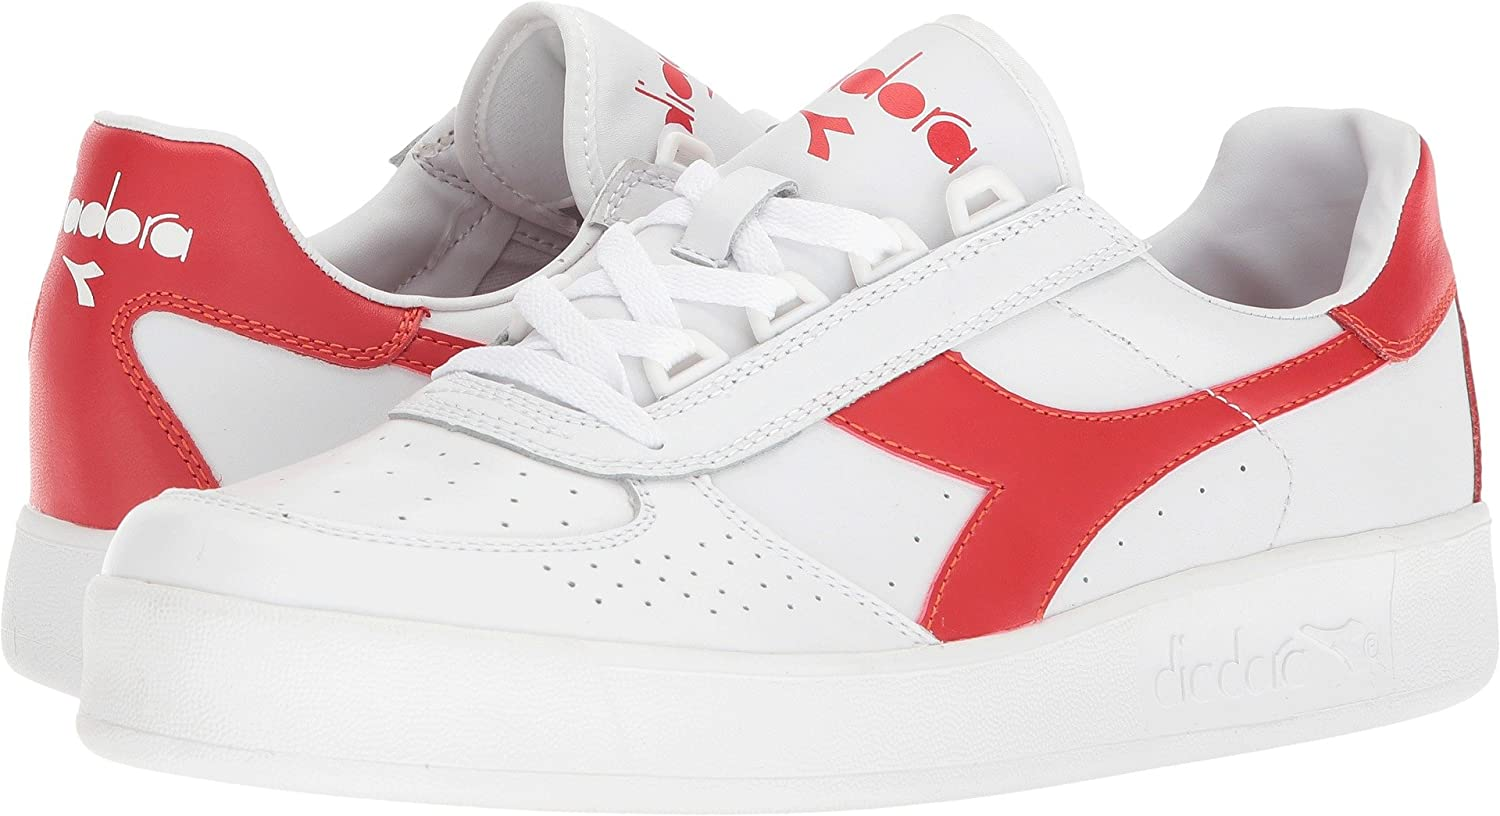 [ディアドラ] DIADORA B.ELITE 3 B078CXRR9T 4 D(M) US|White/Ferrari Red Italy White/Ferrari Red Italy 4 D(M) US